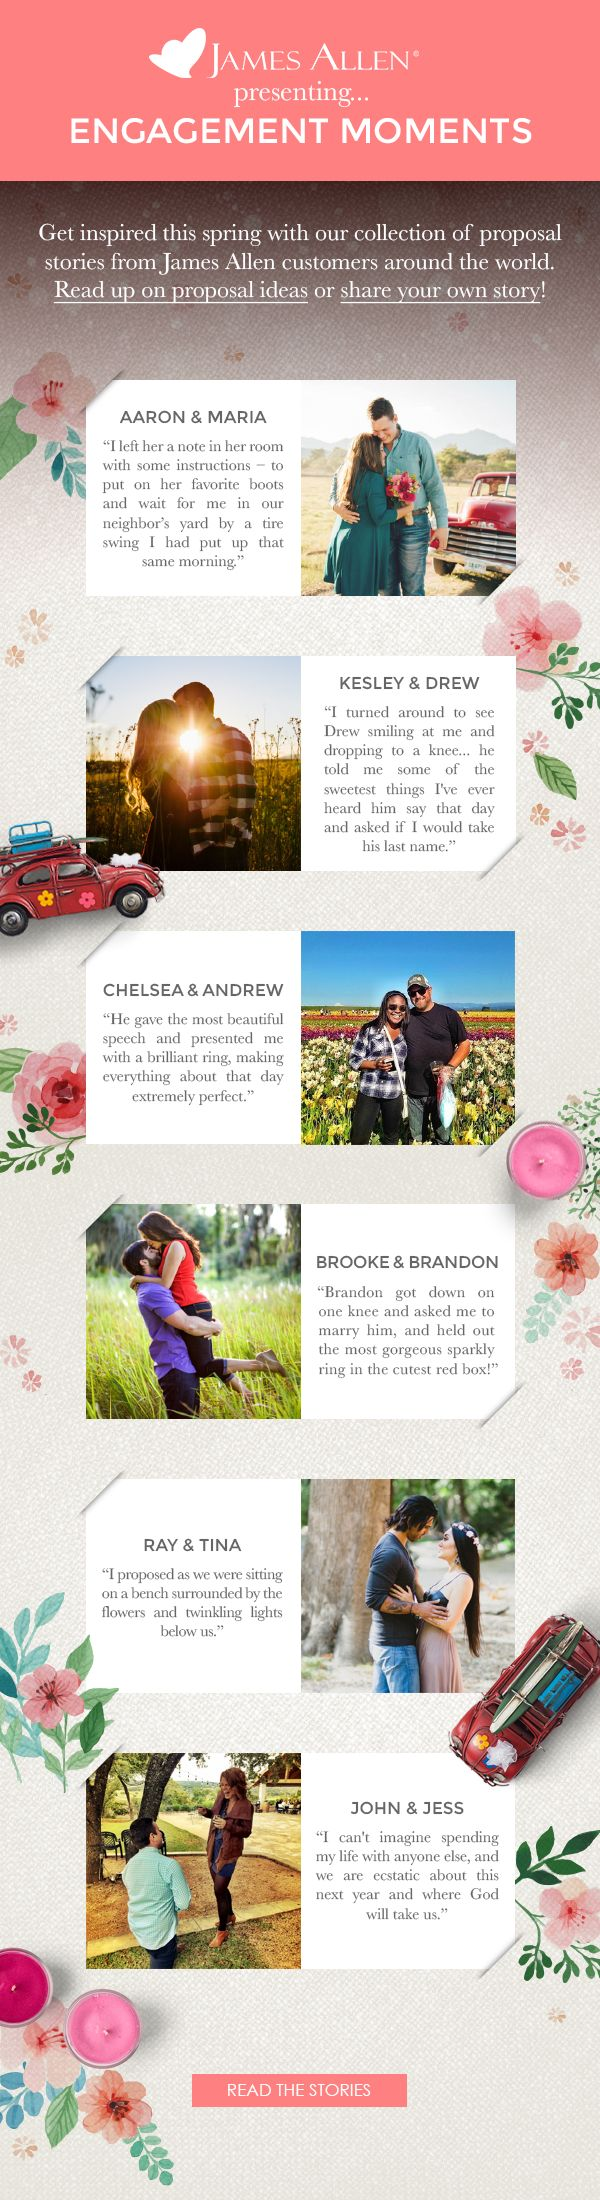 Luxury Romantic Proposal Ideas At Home Composition - Home Decorating ...